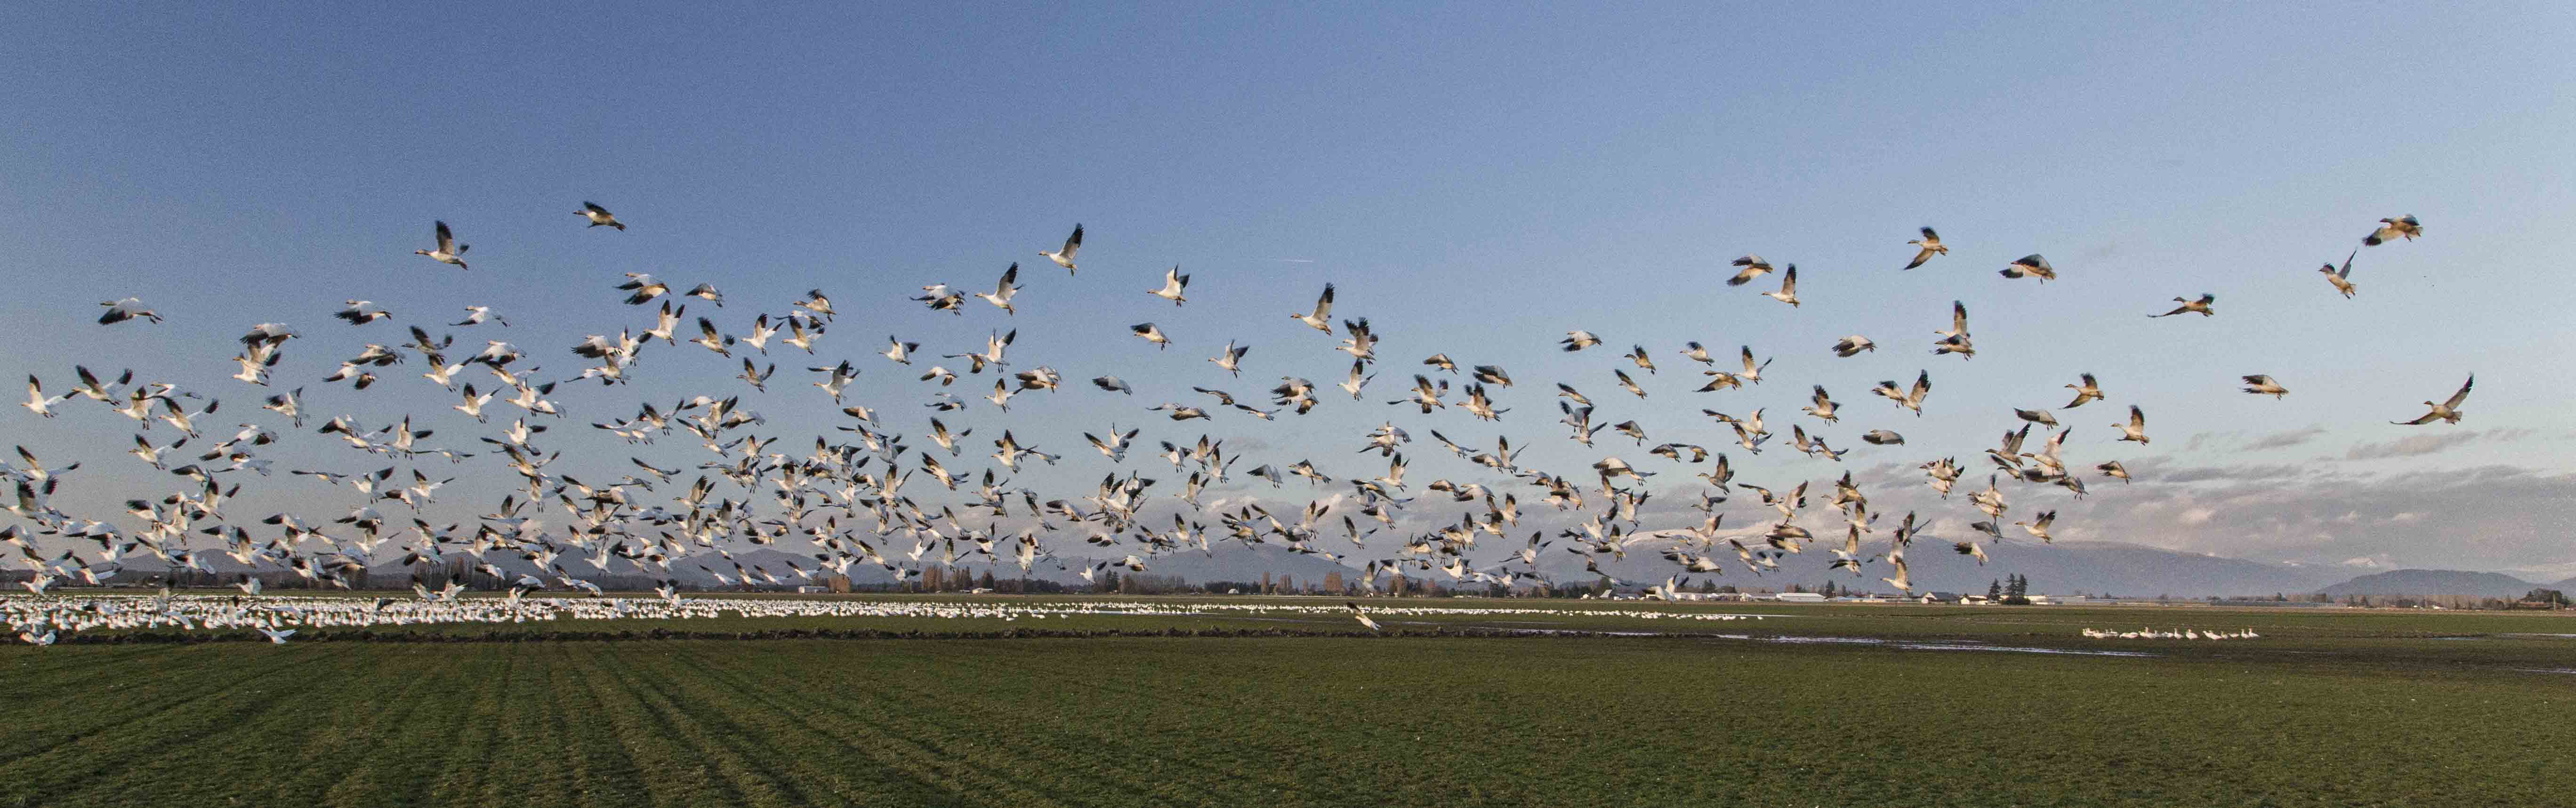 snow geese take flight over a field